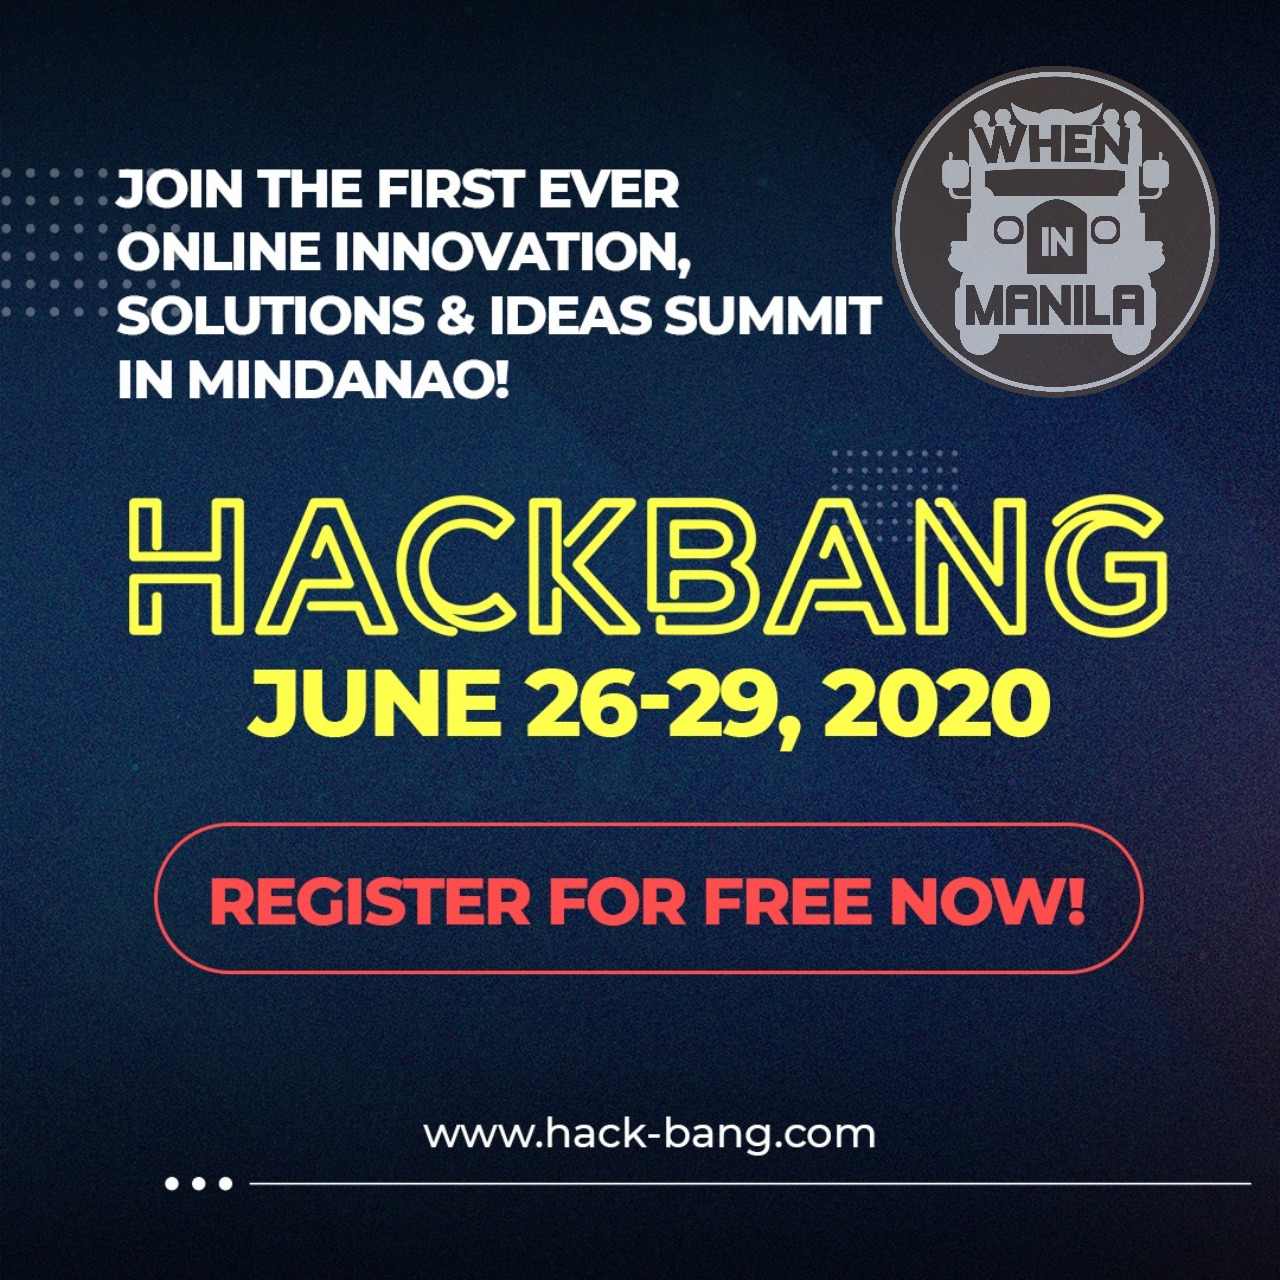 Hackbang: A 4-day Virtual Hackathon that Aims to Address the Challenges of COVID-19 in Mindanao - When In Manila